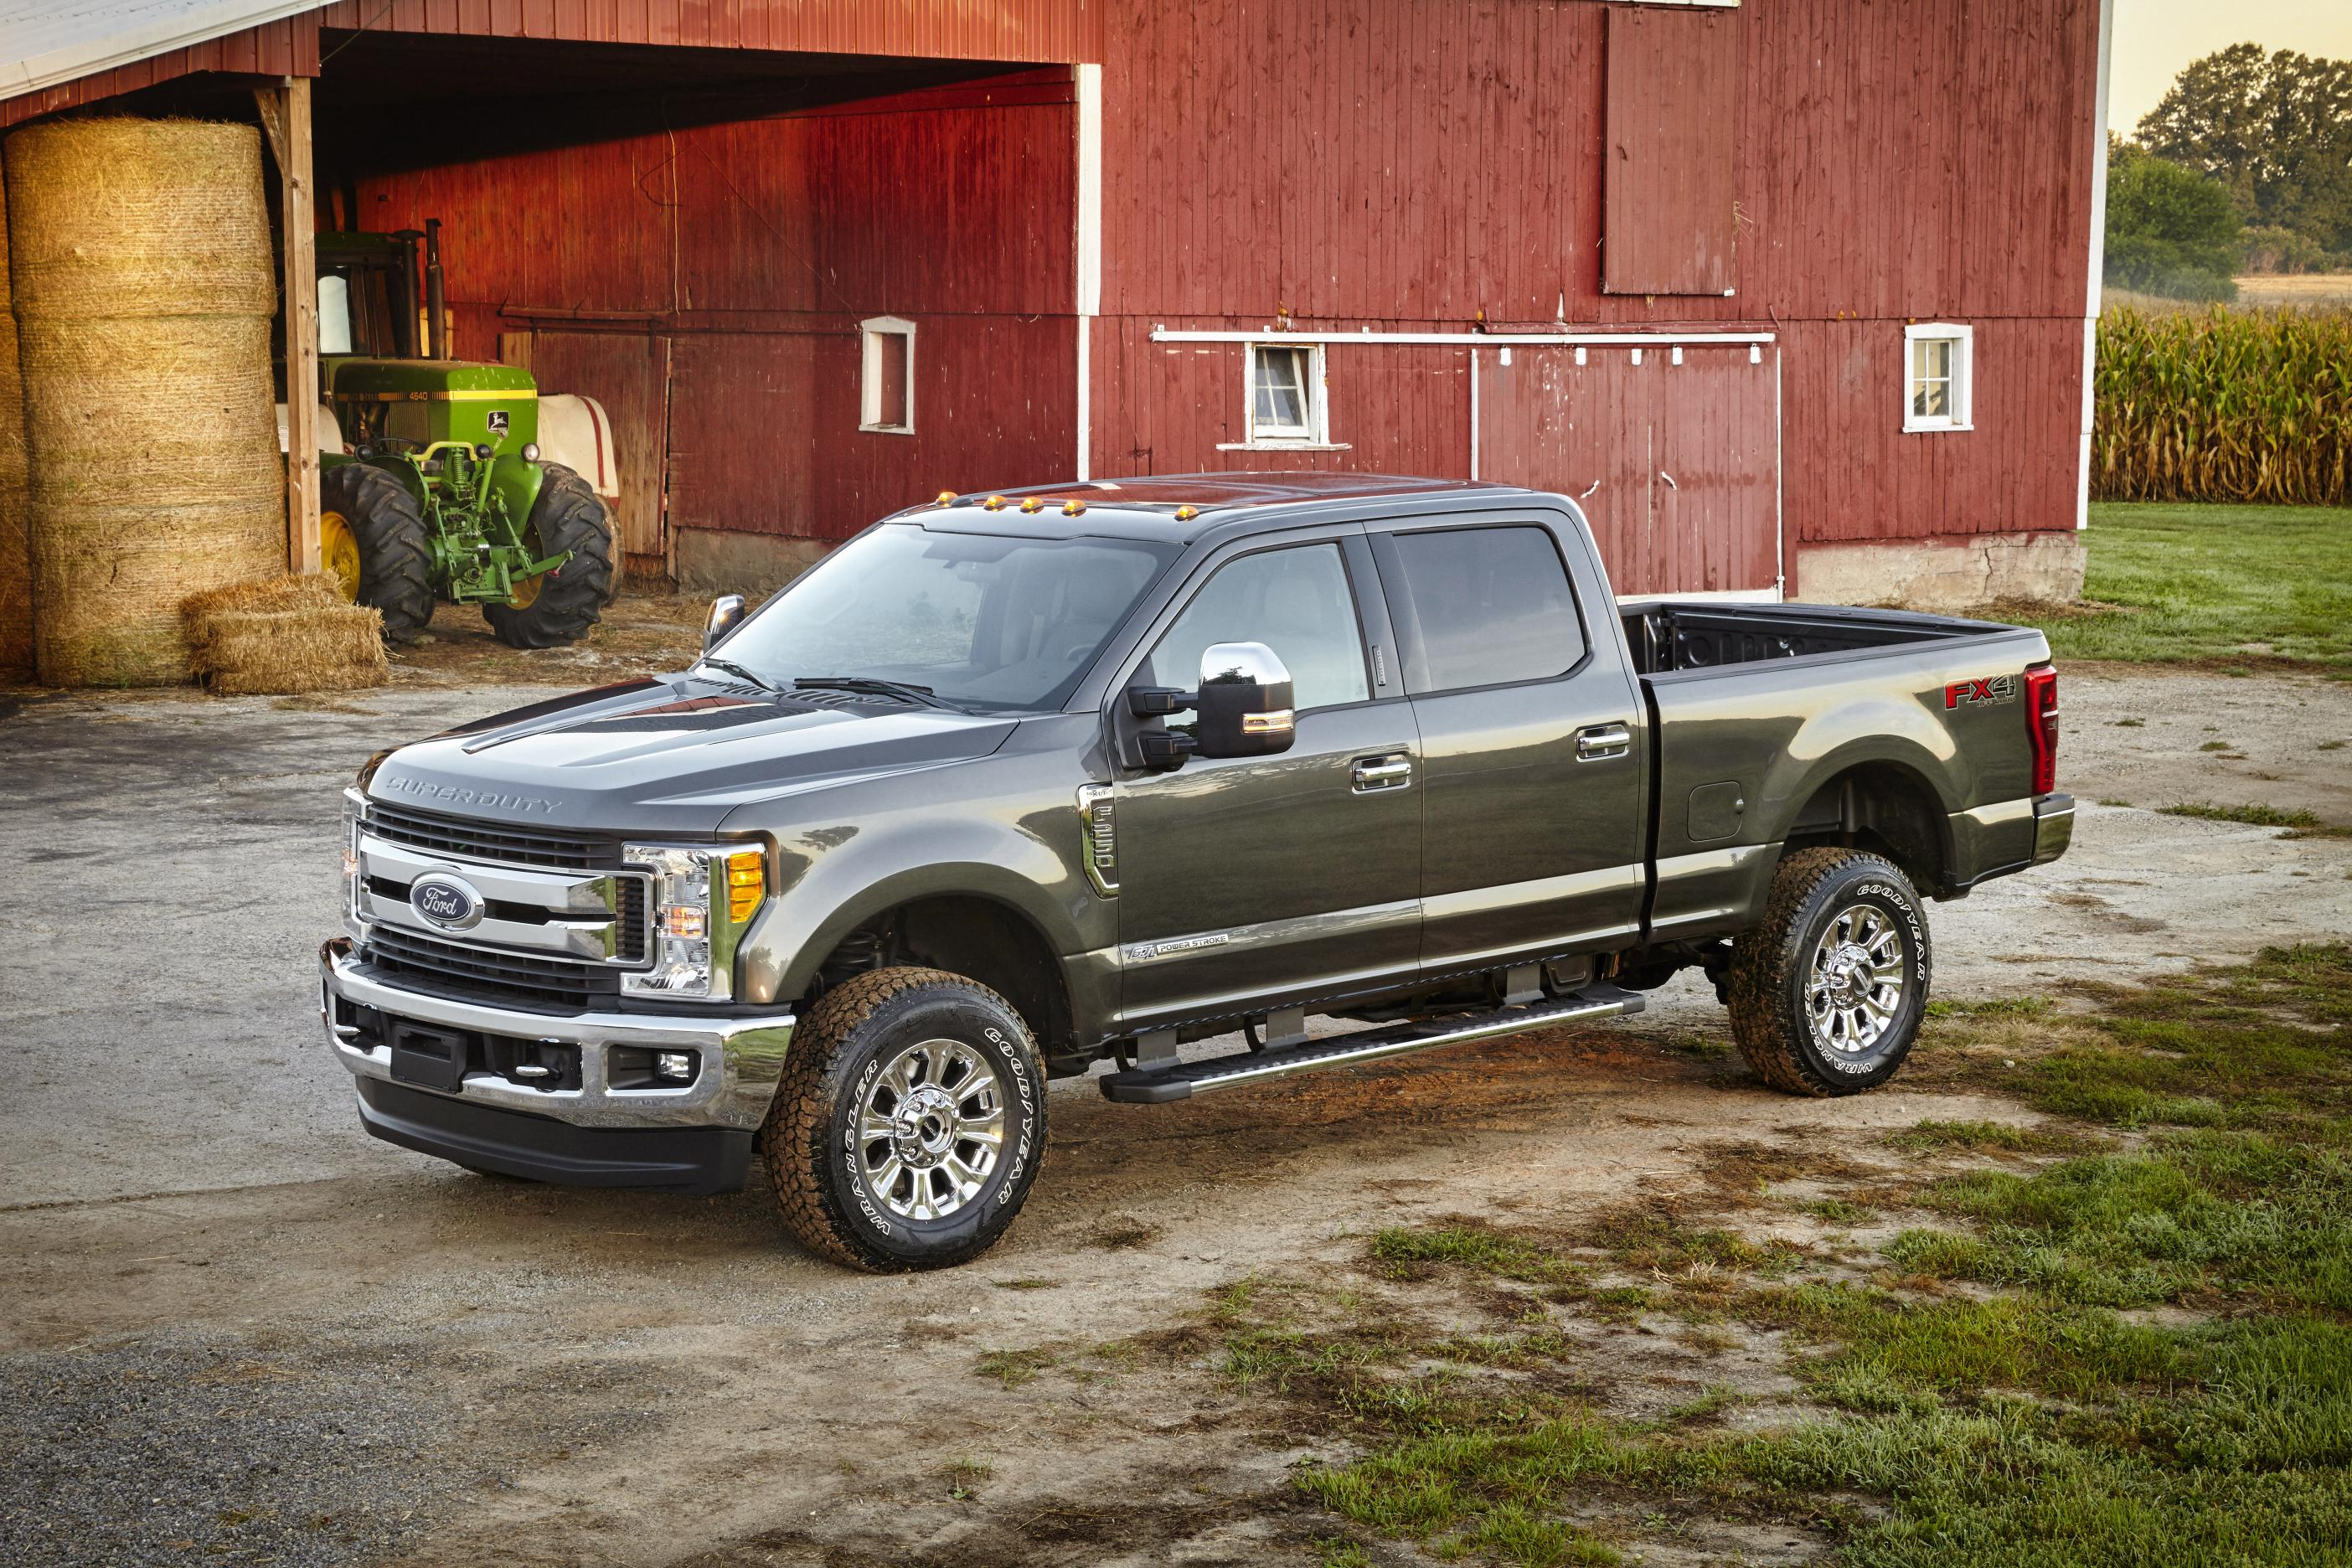 2017 ford f series super duty tested in michigan it s built tough autoevolution. Black Bedroom Furniture Sets. Home Design Ideas